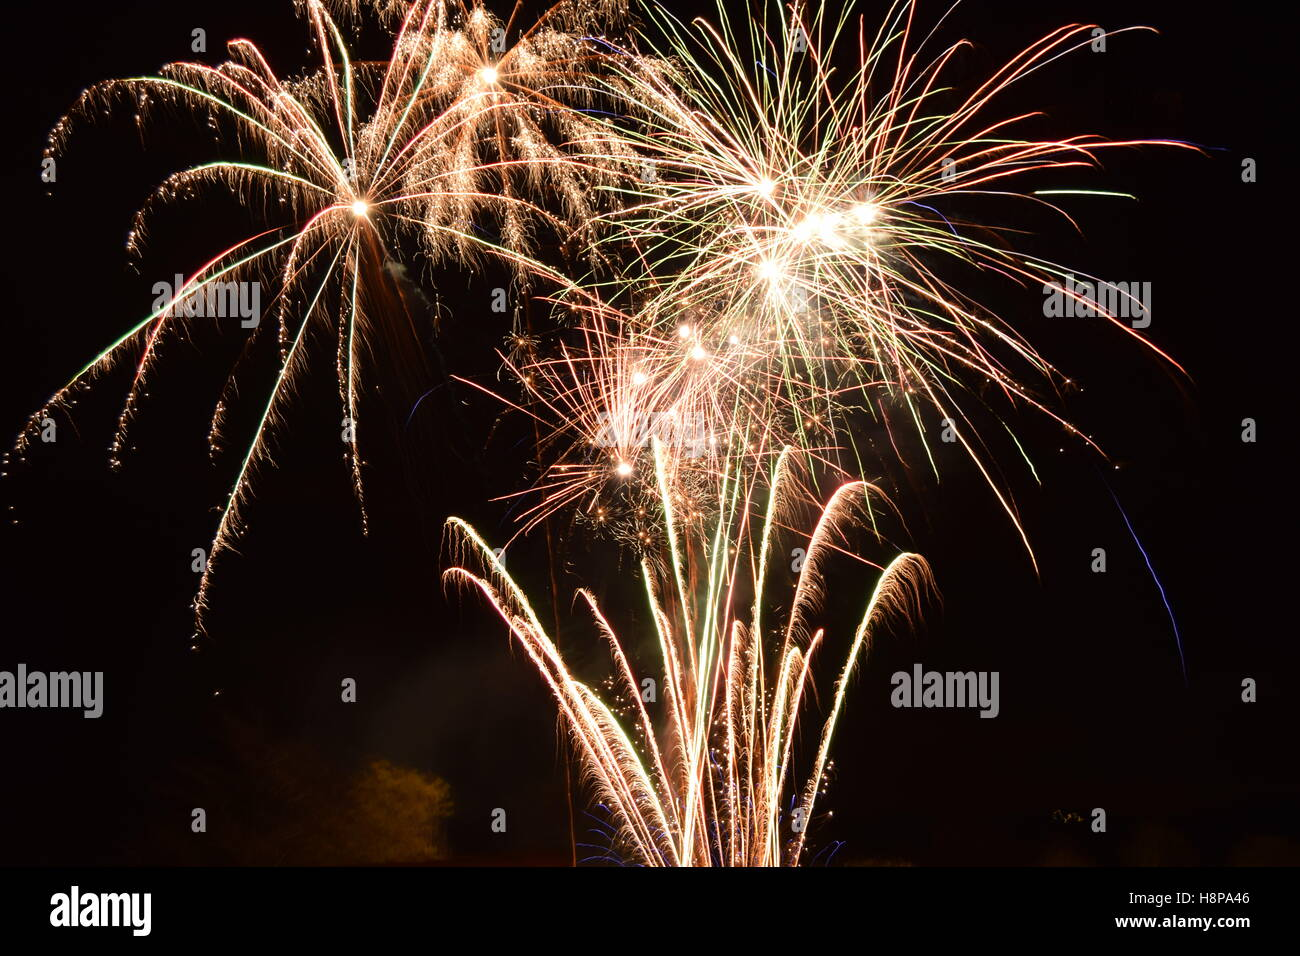 Fireworks, Feathered effect - Stock Image